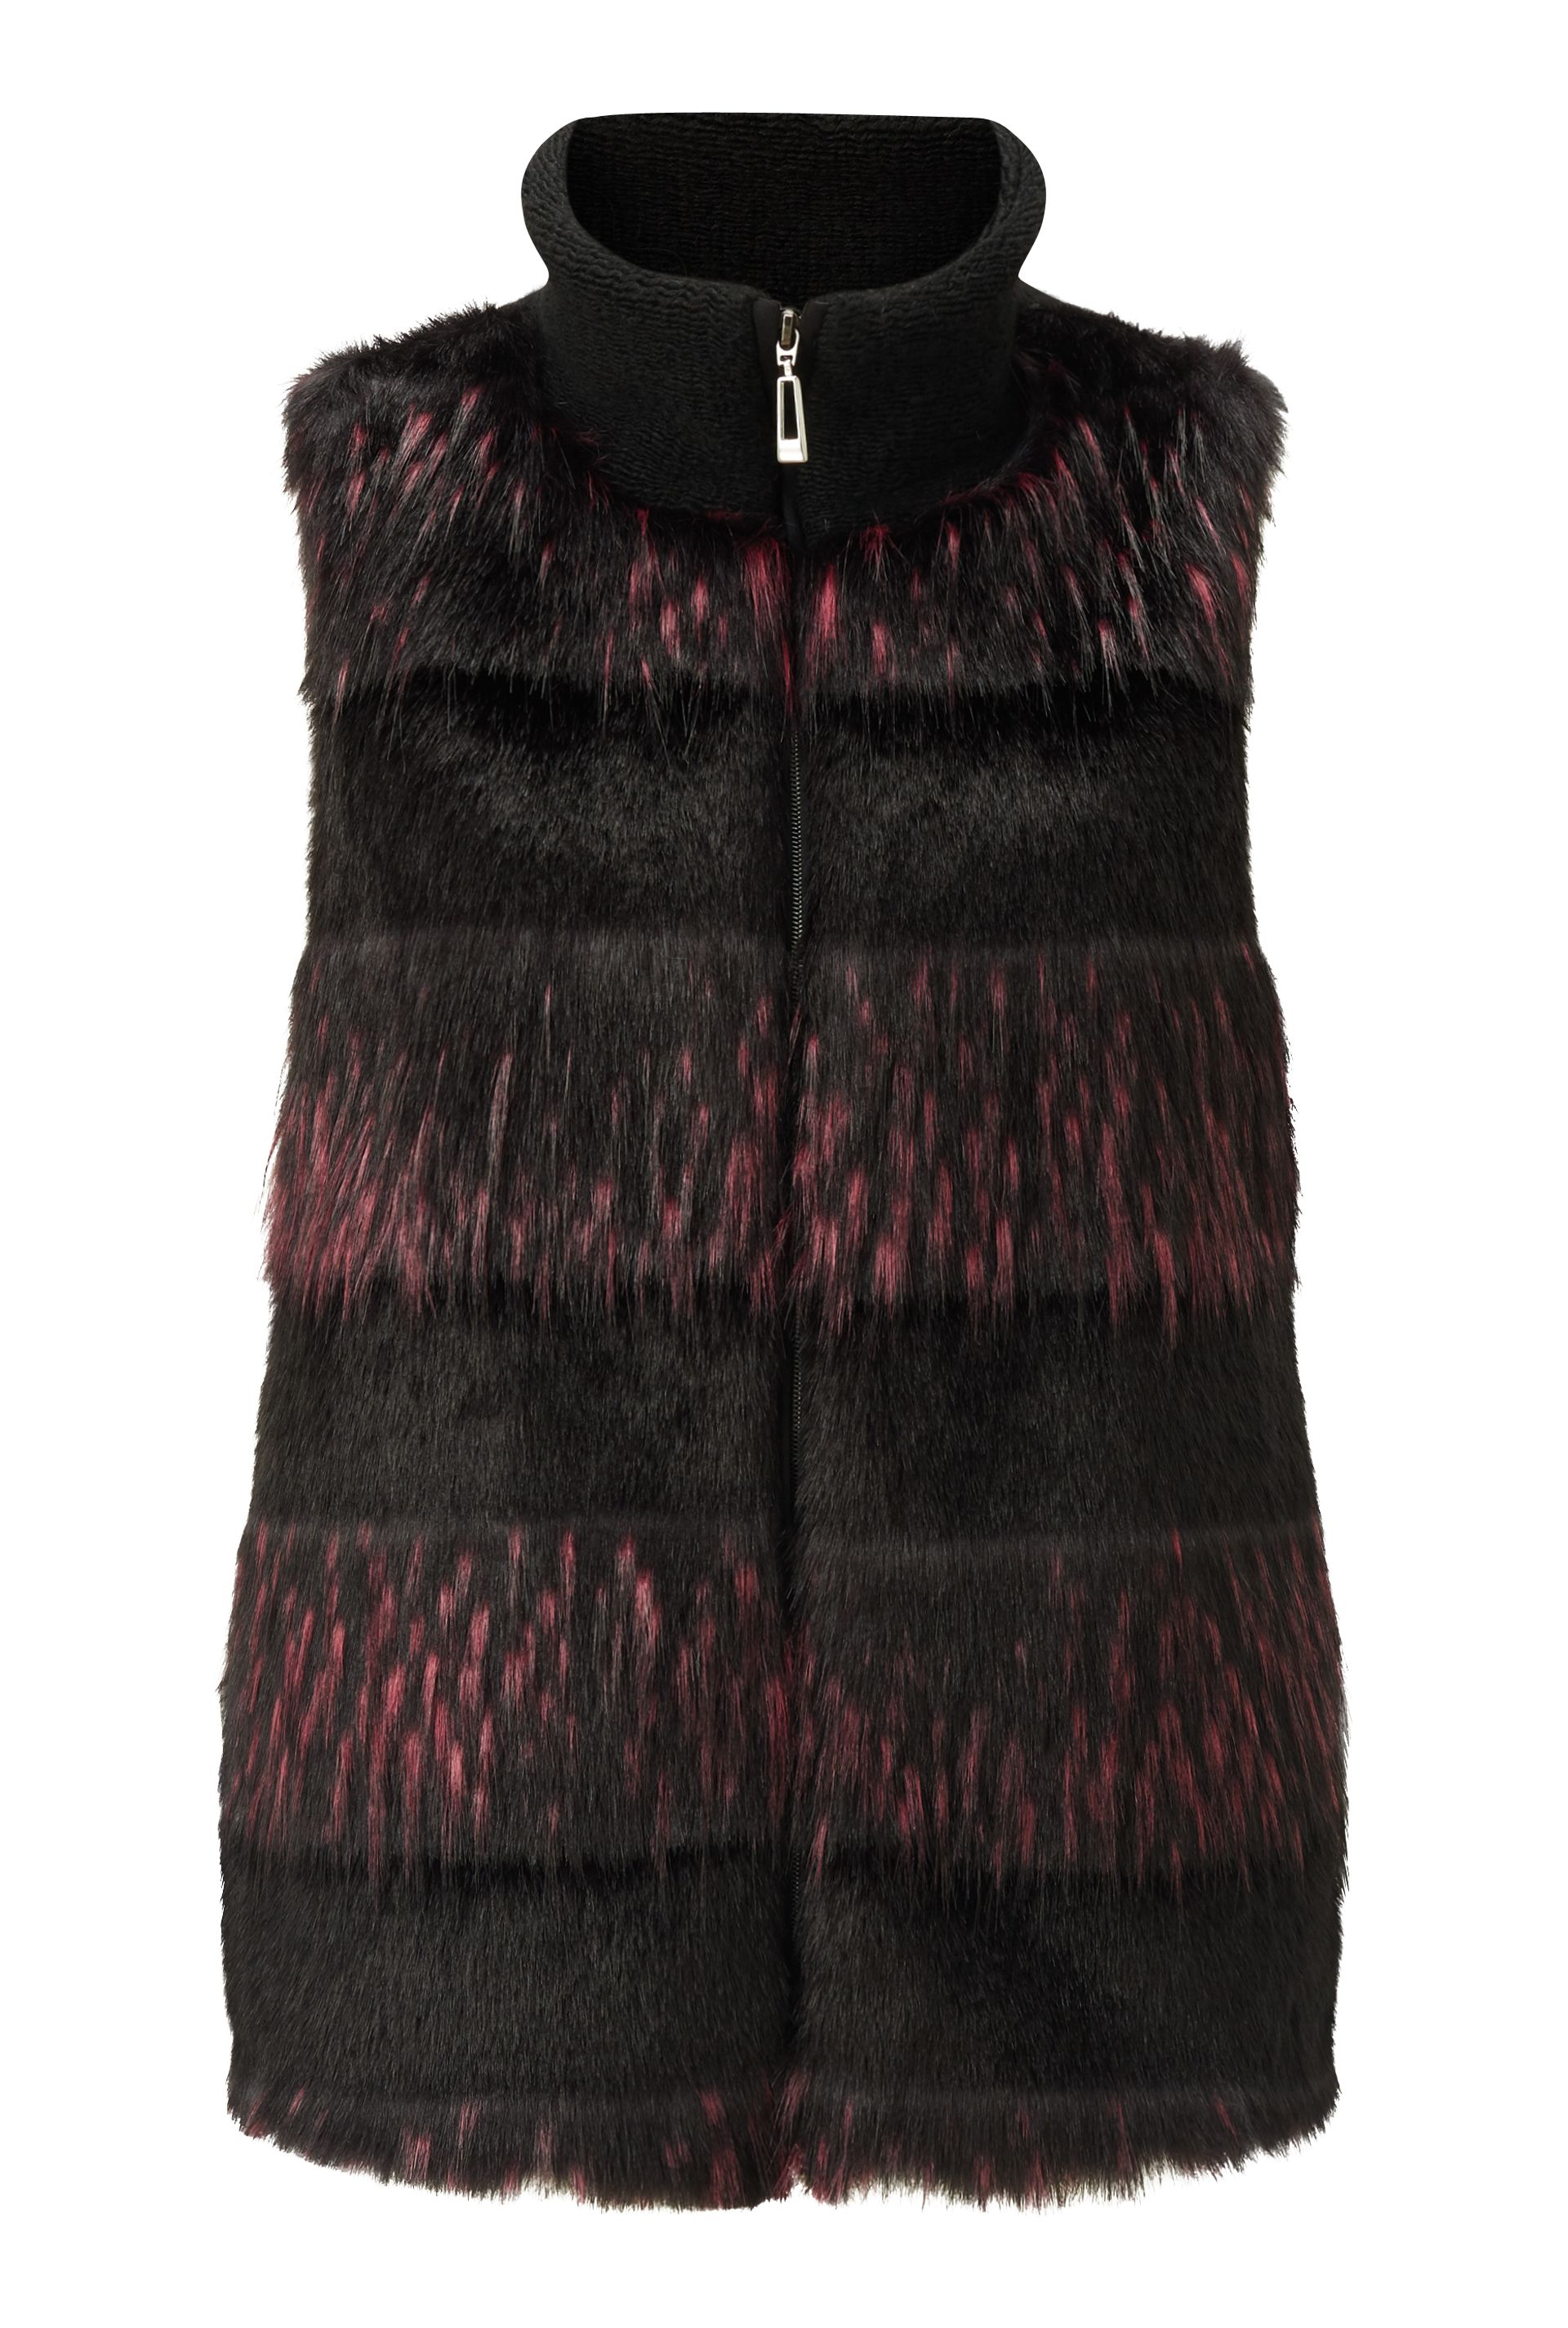 James Lakeland Faux Fur Gilet, Black